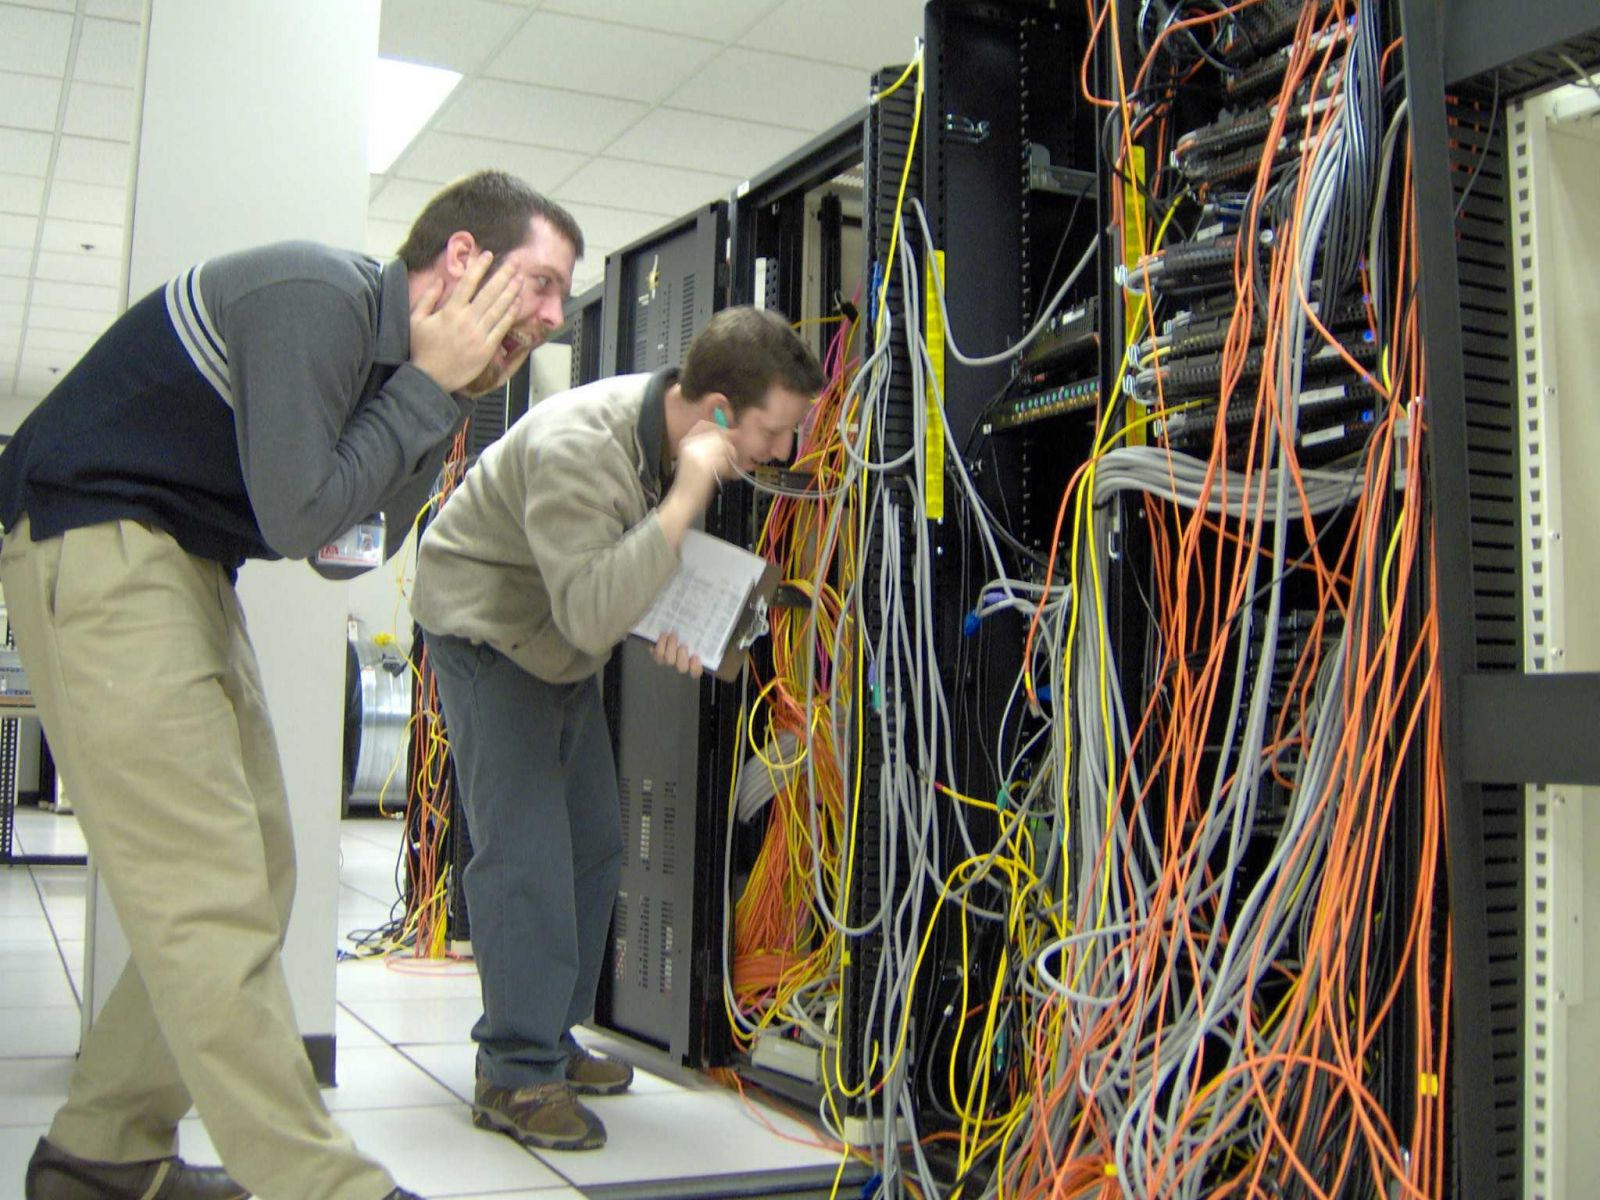 Network Wiring | Structured Network Cabling Network Cabling Data Center Cabling